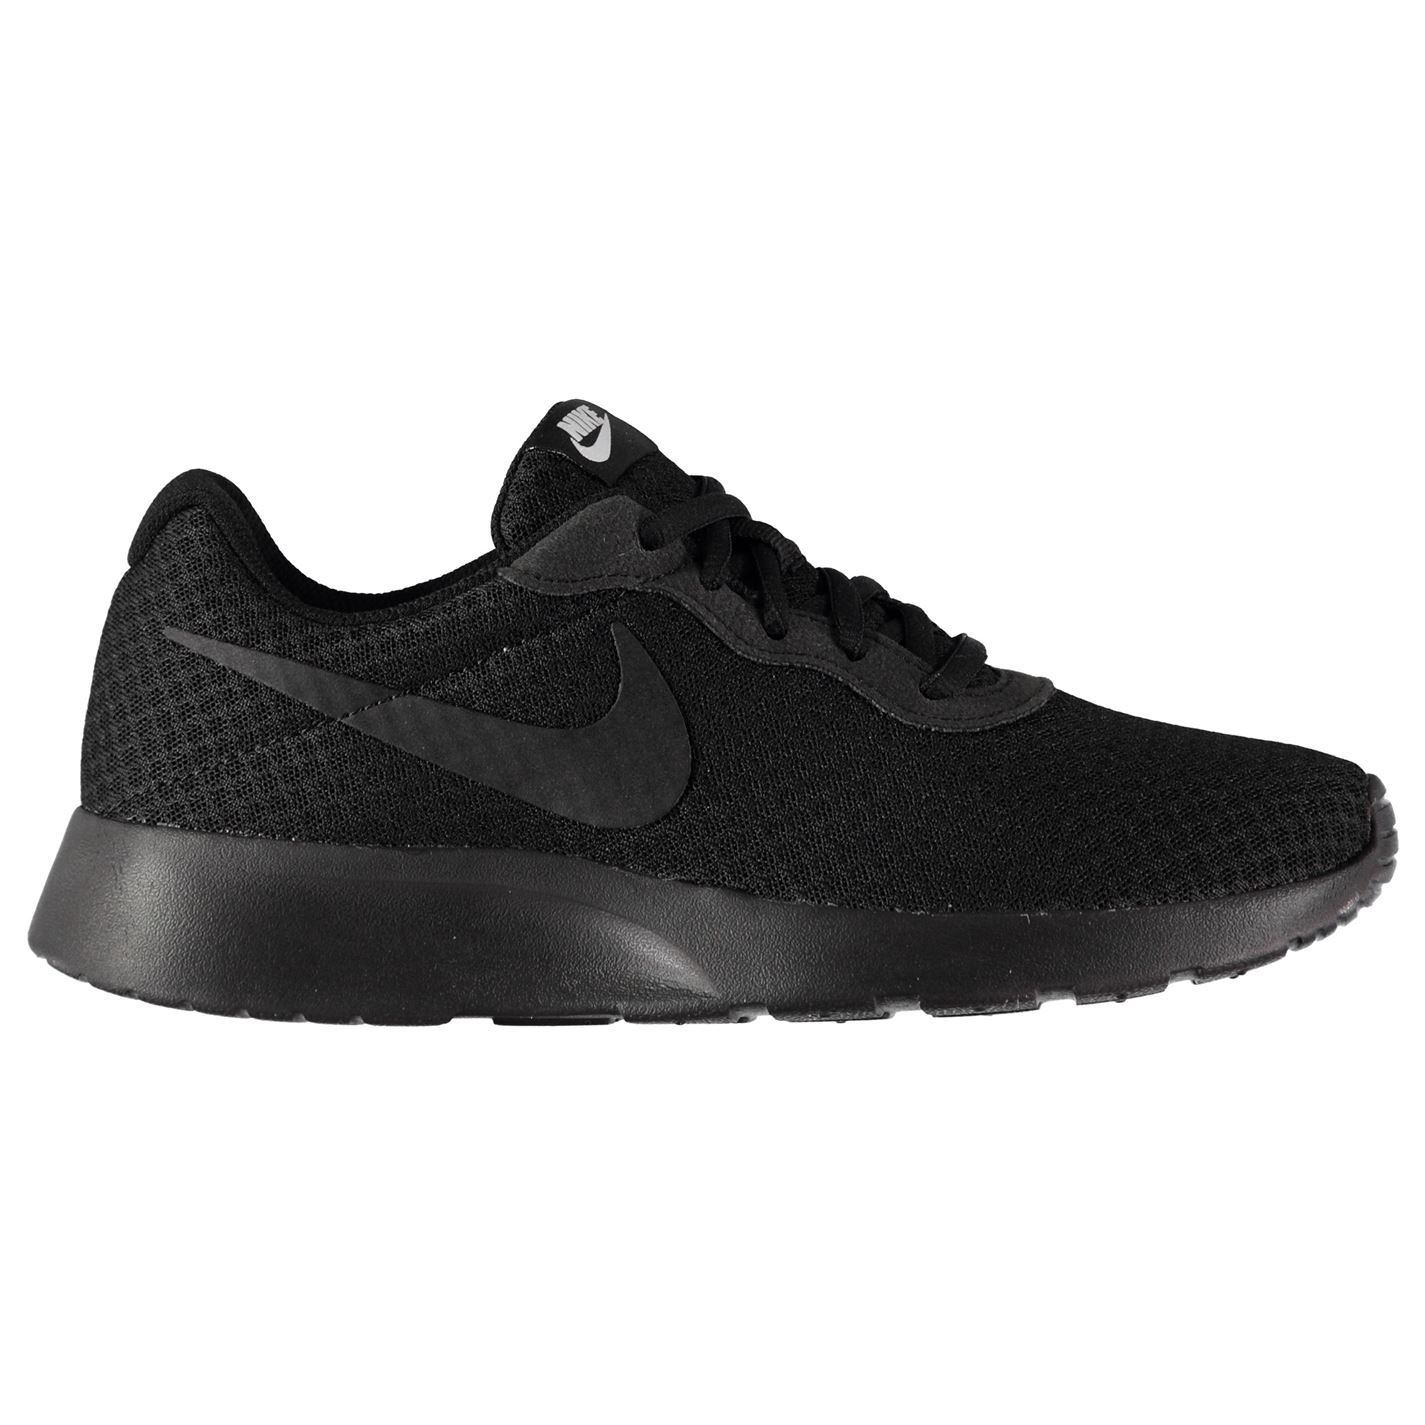 ... Nike Tanjun Trainers Womens Black Sports Trainers Sneakers ... 6840be498